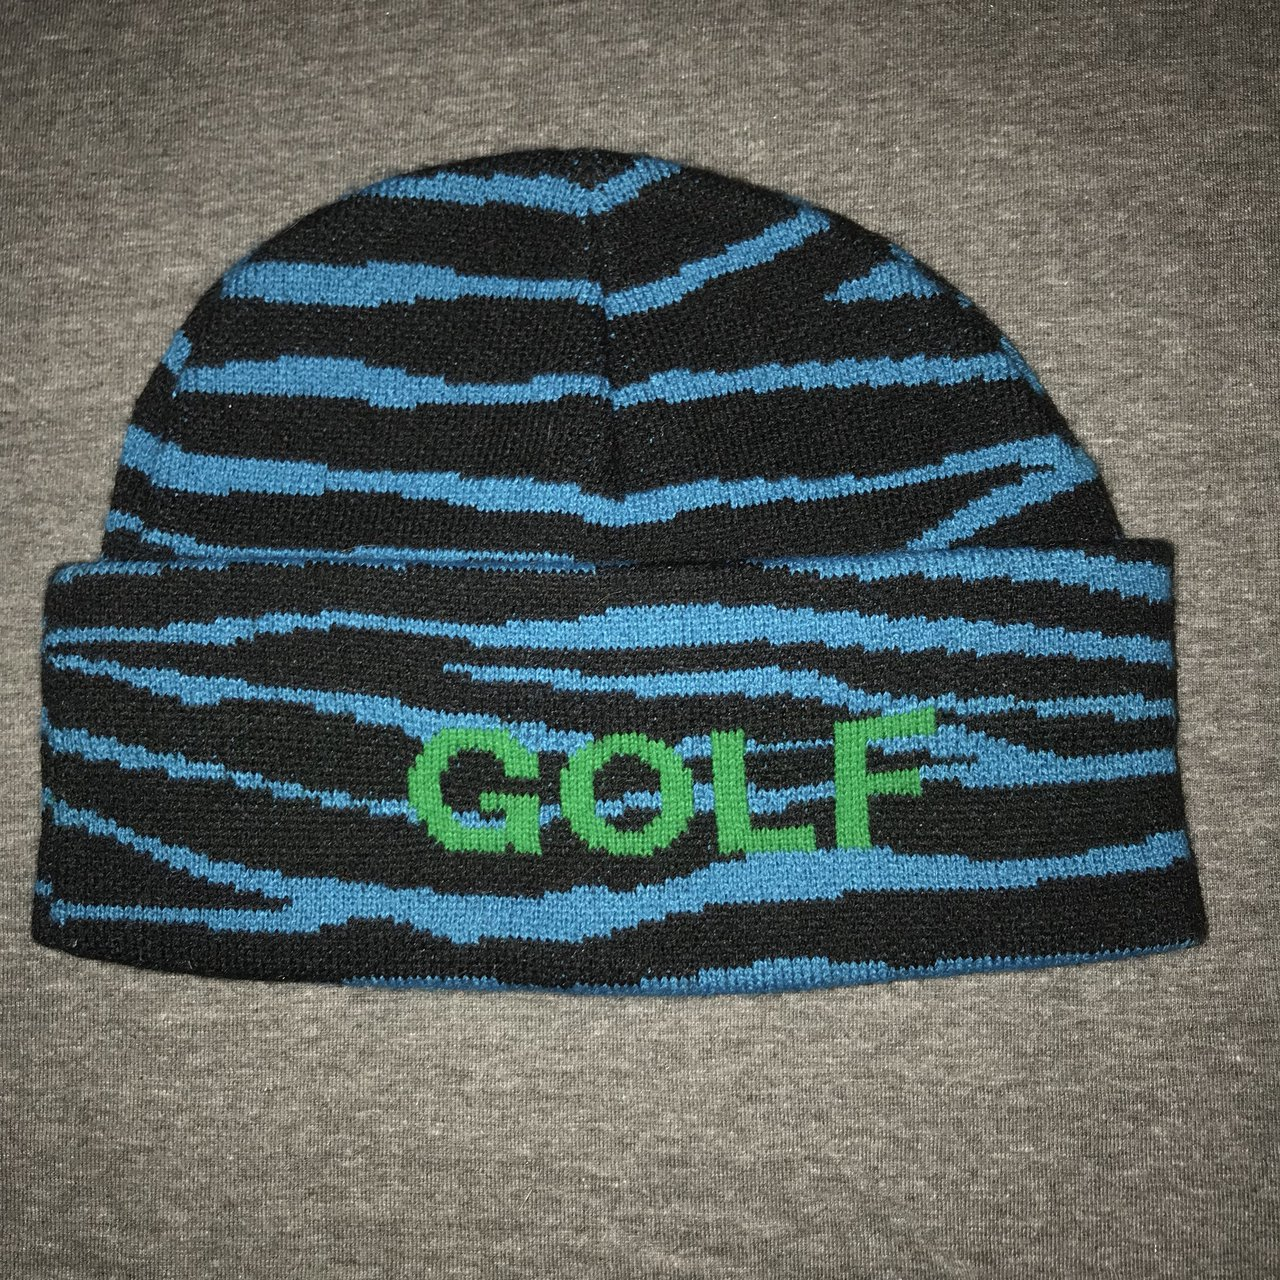 GOLF Blue Tiger Beanie ! Haven t used it cause I dont look - Depop f66127be0cd